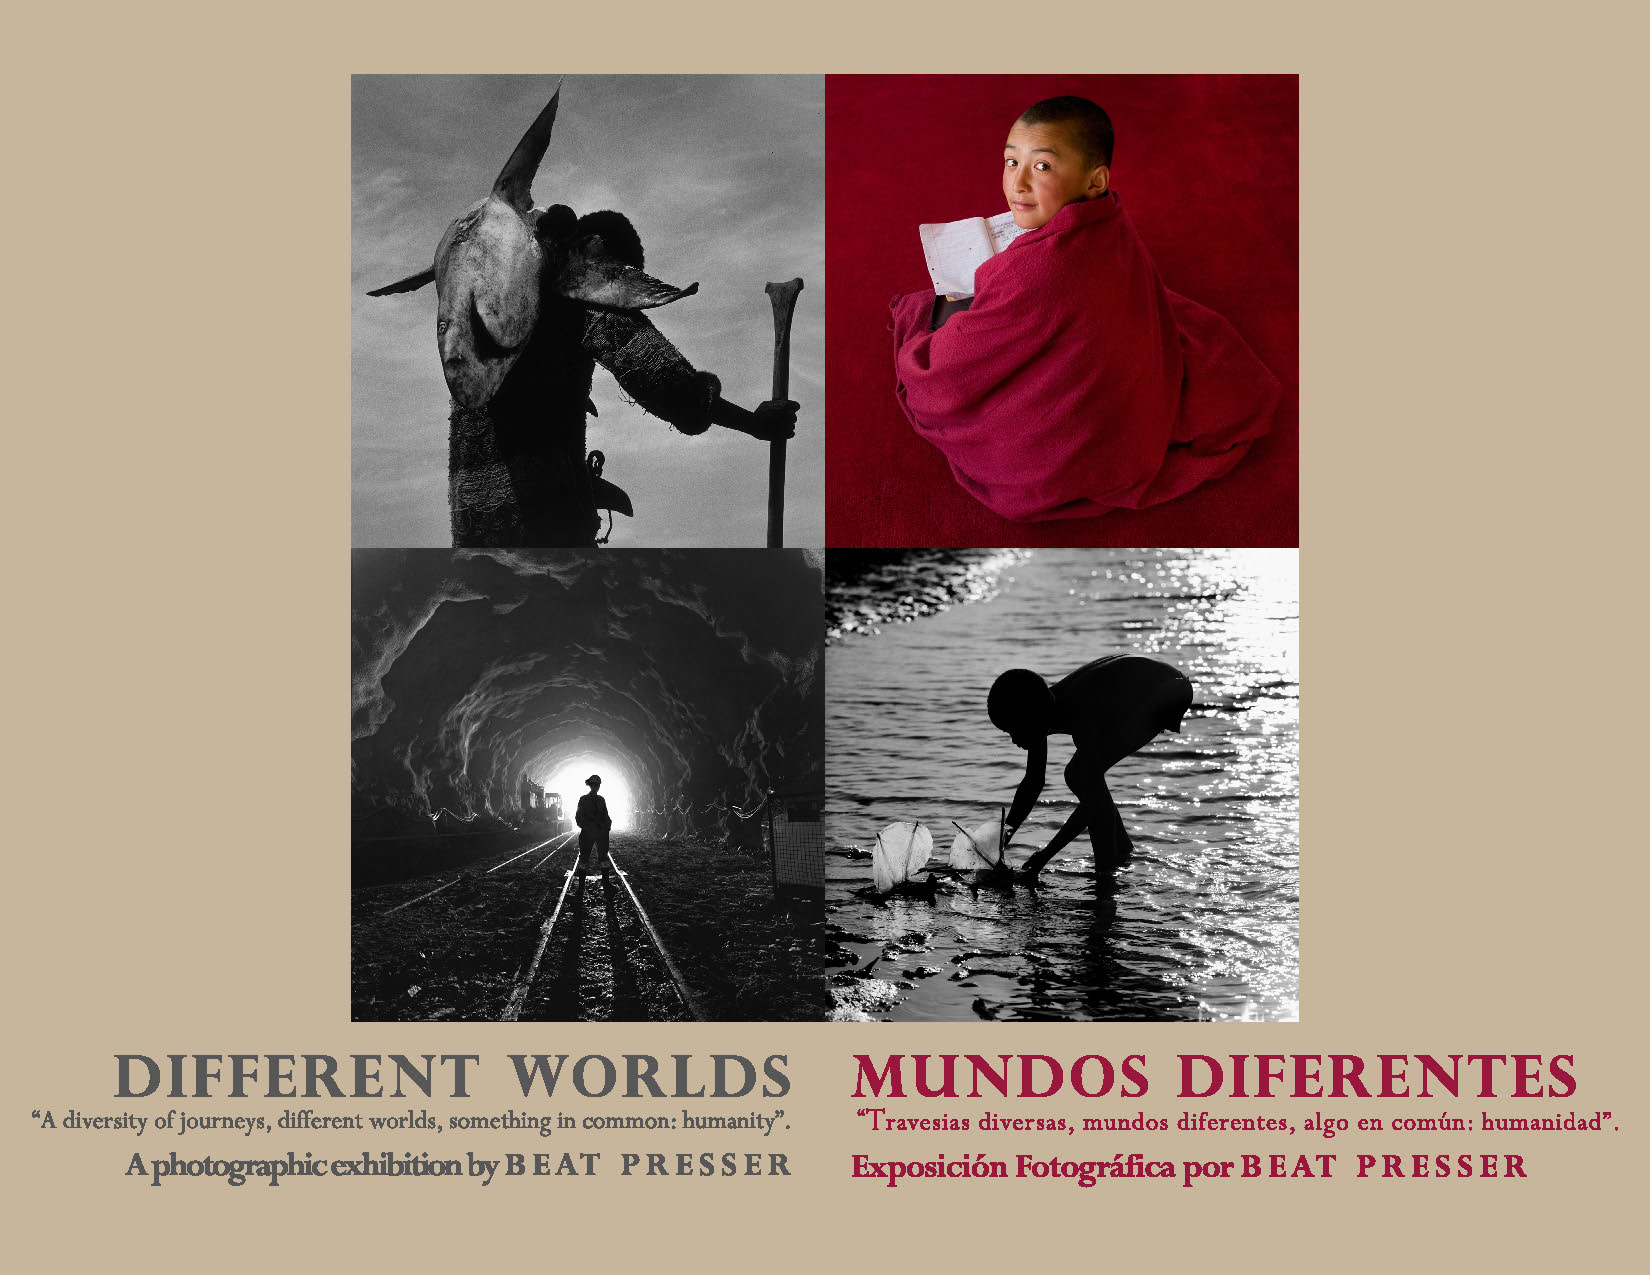 MUNDOS DIFERENTES DOCUMENTATION_Seite_01